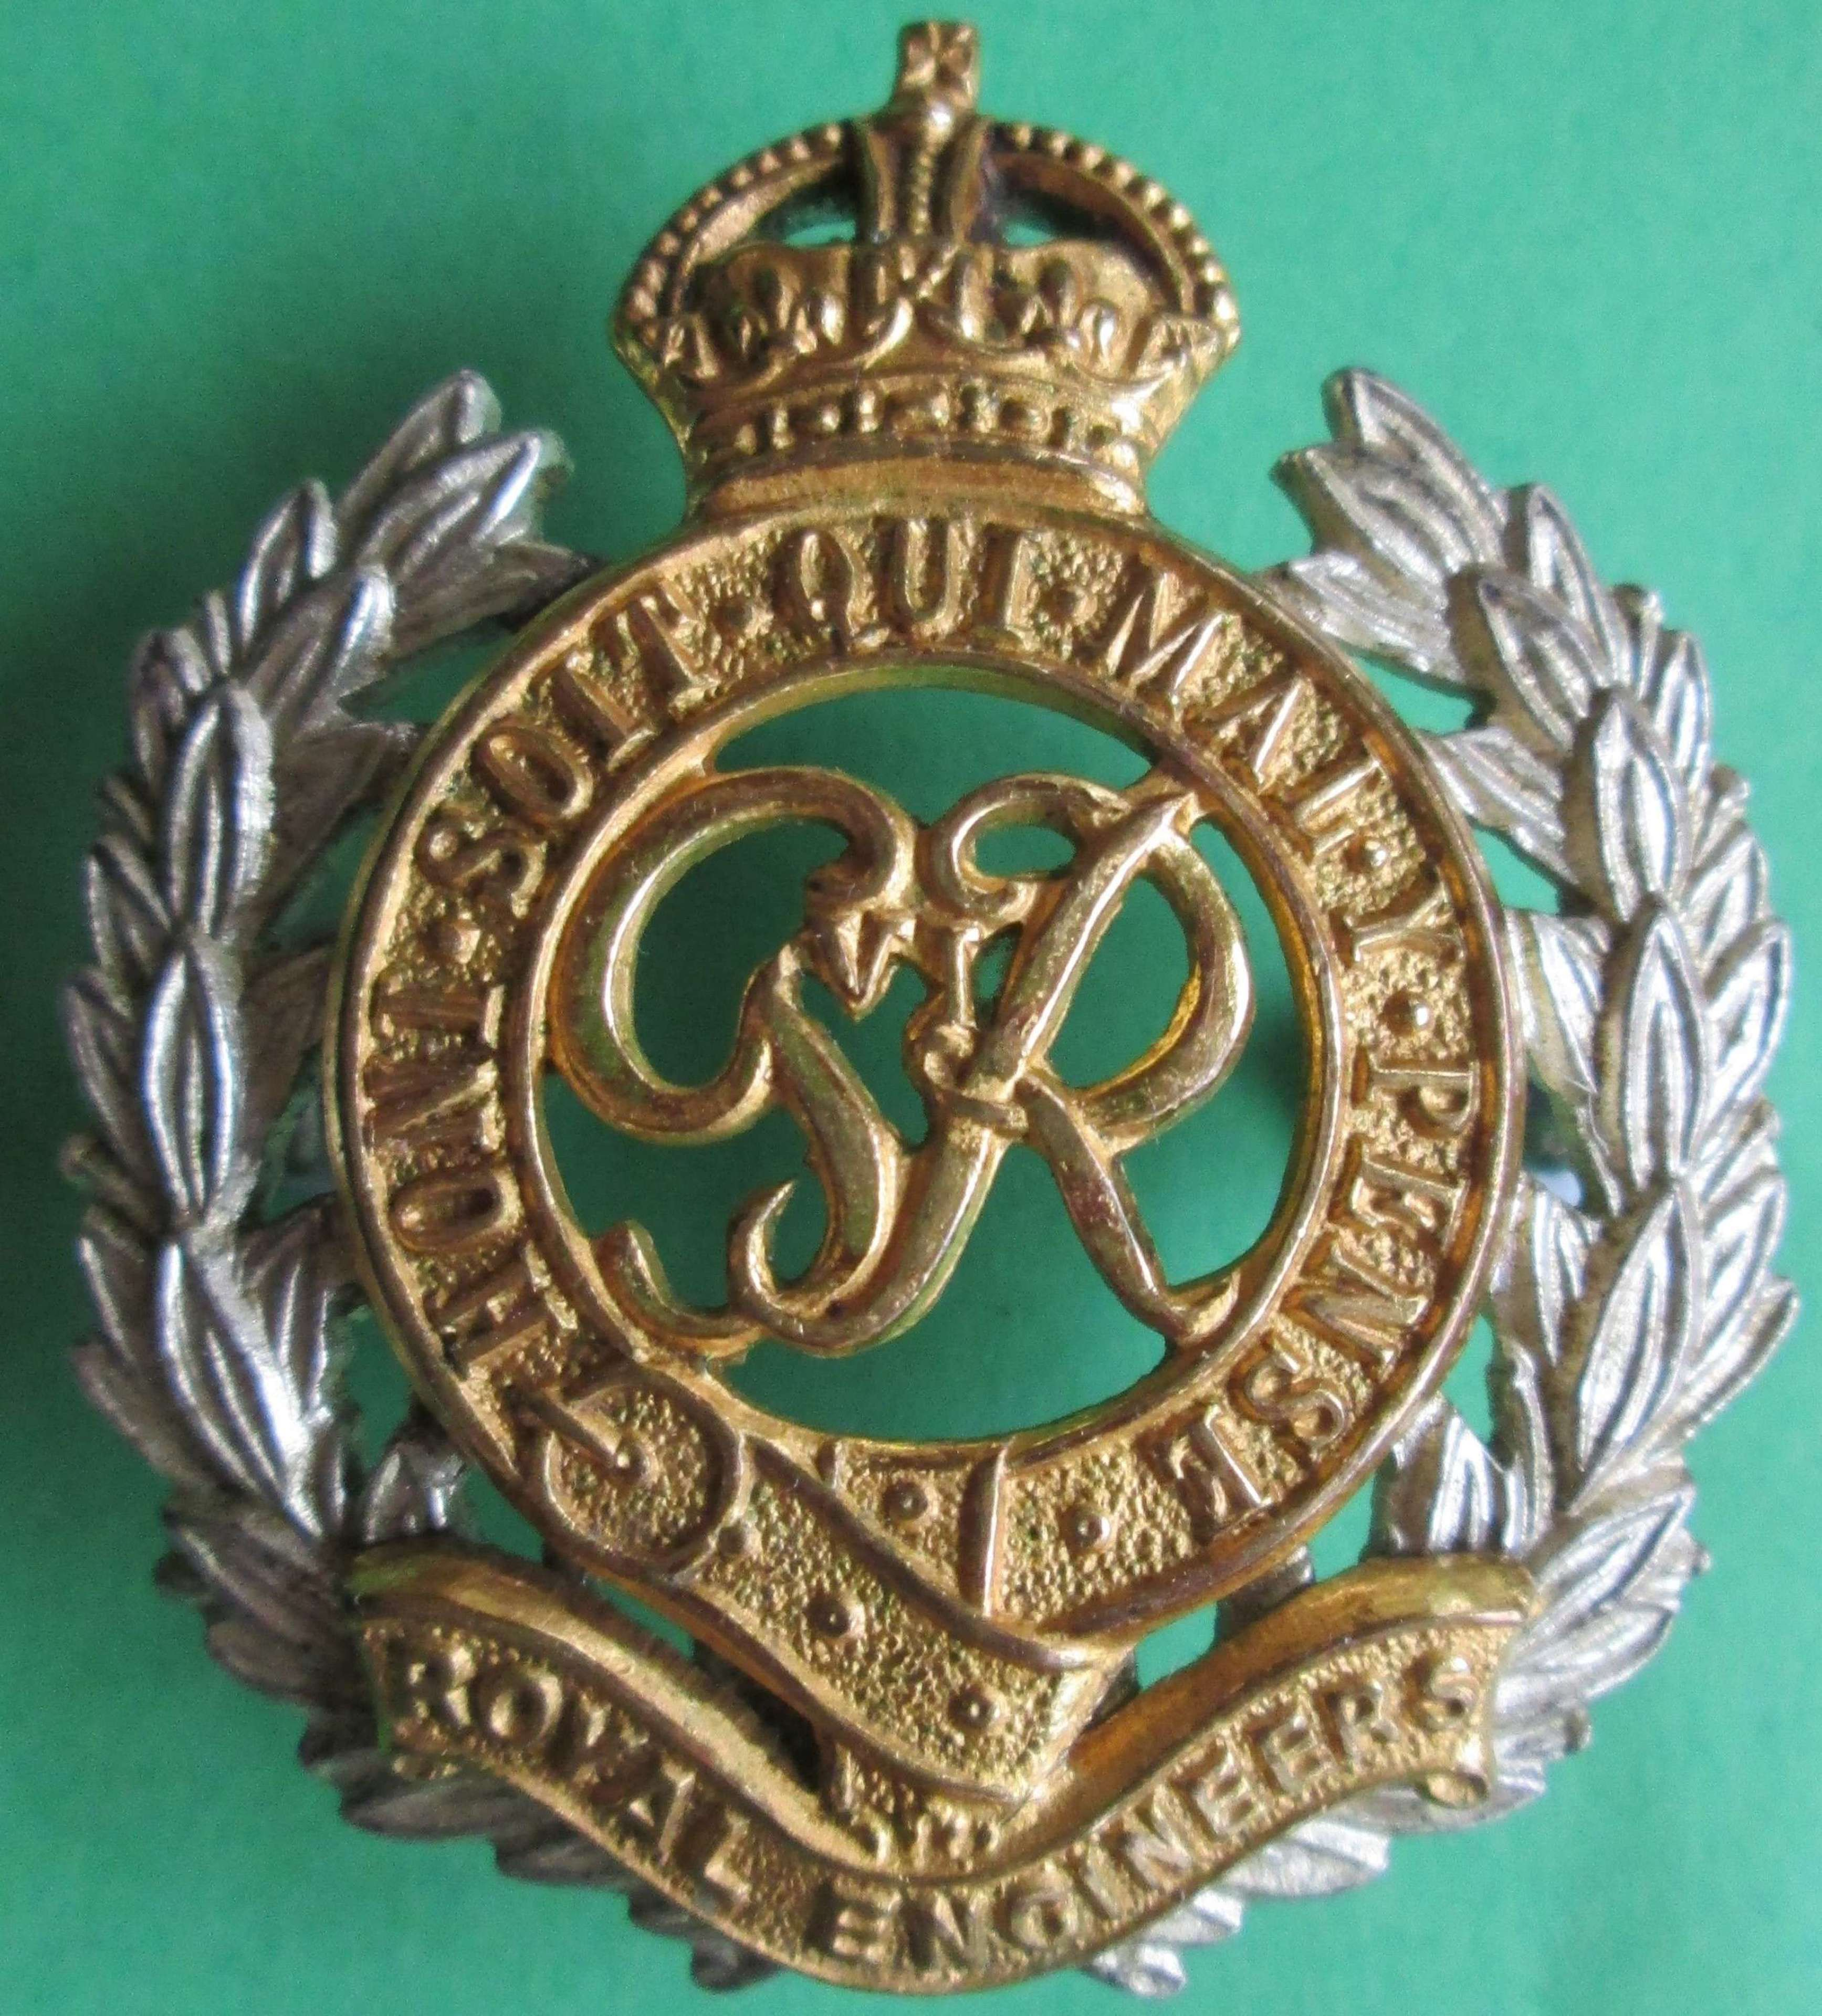 A POST 1947 OTHER RANKS ROYAL ENGINEERS GILT CAP BADGE